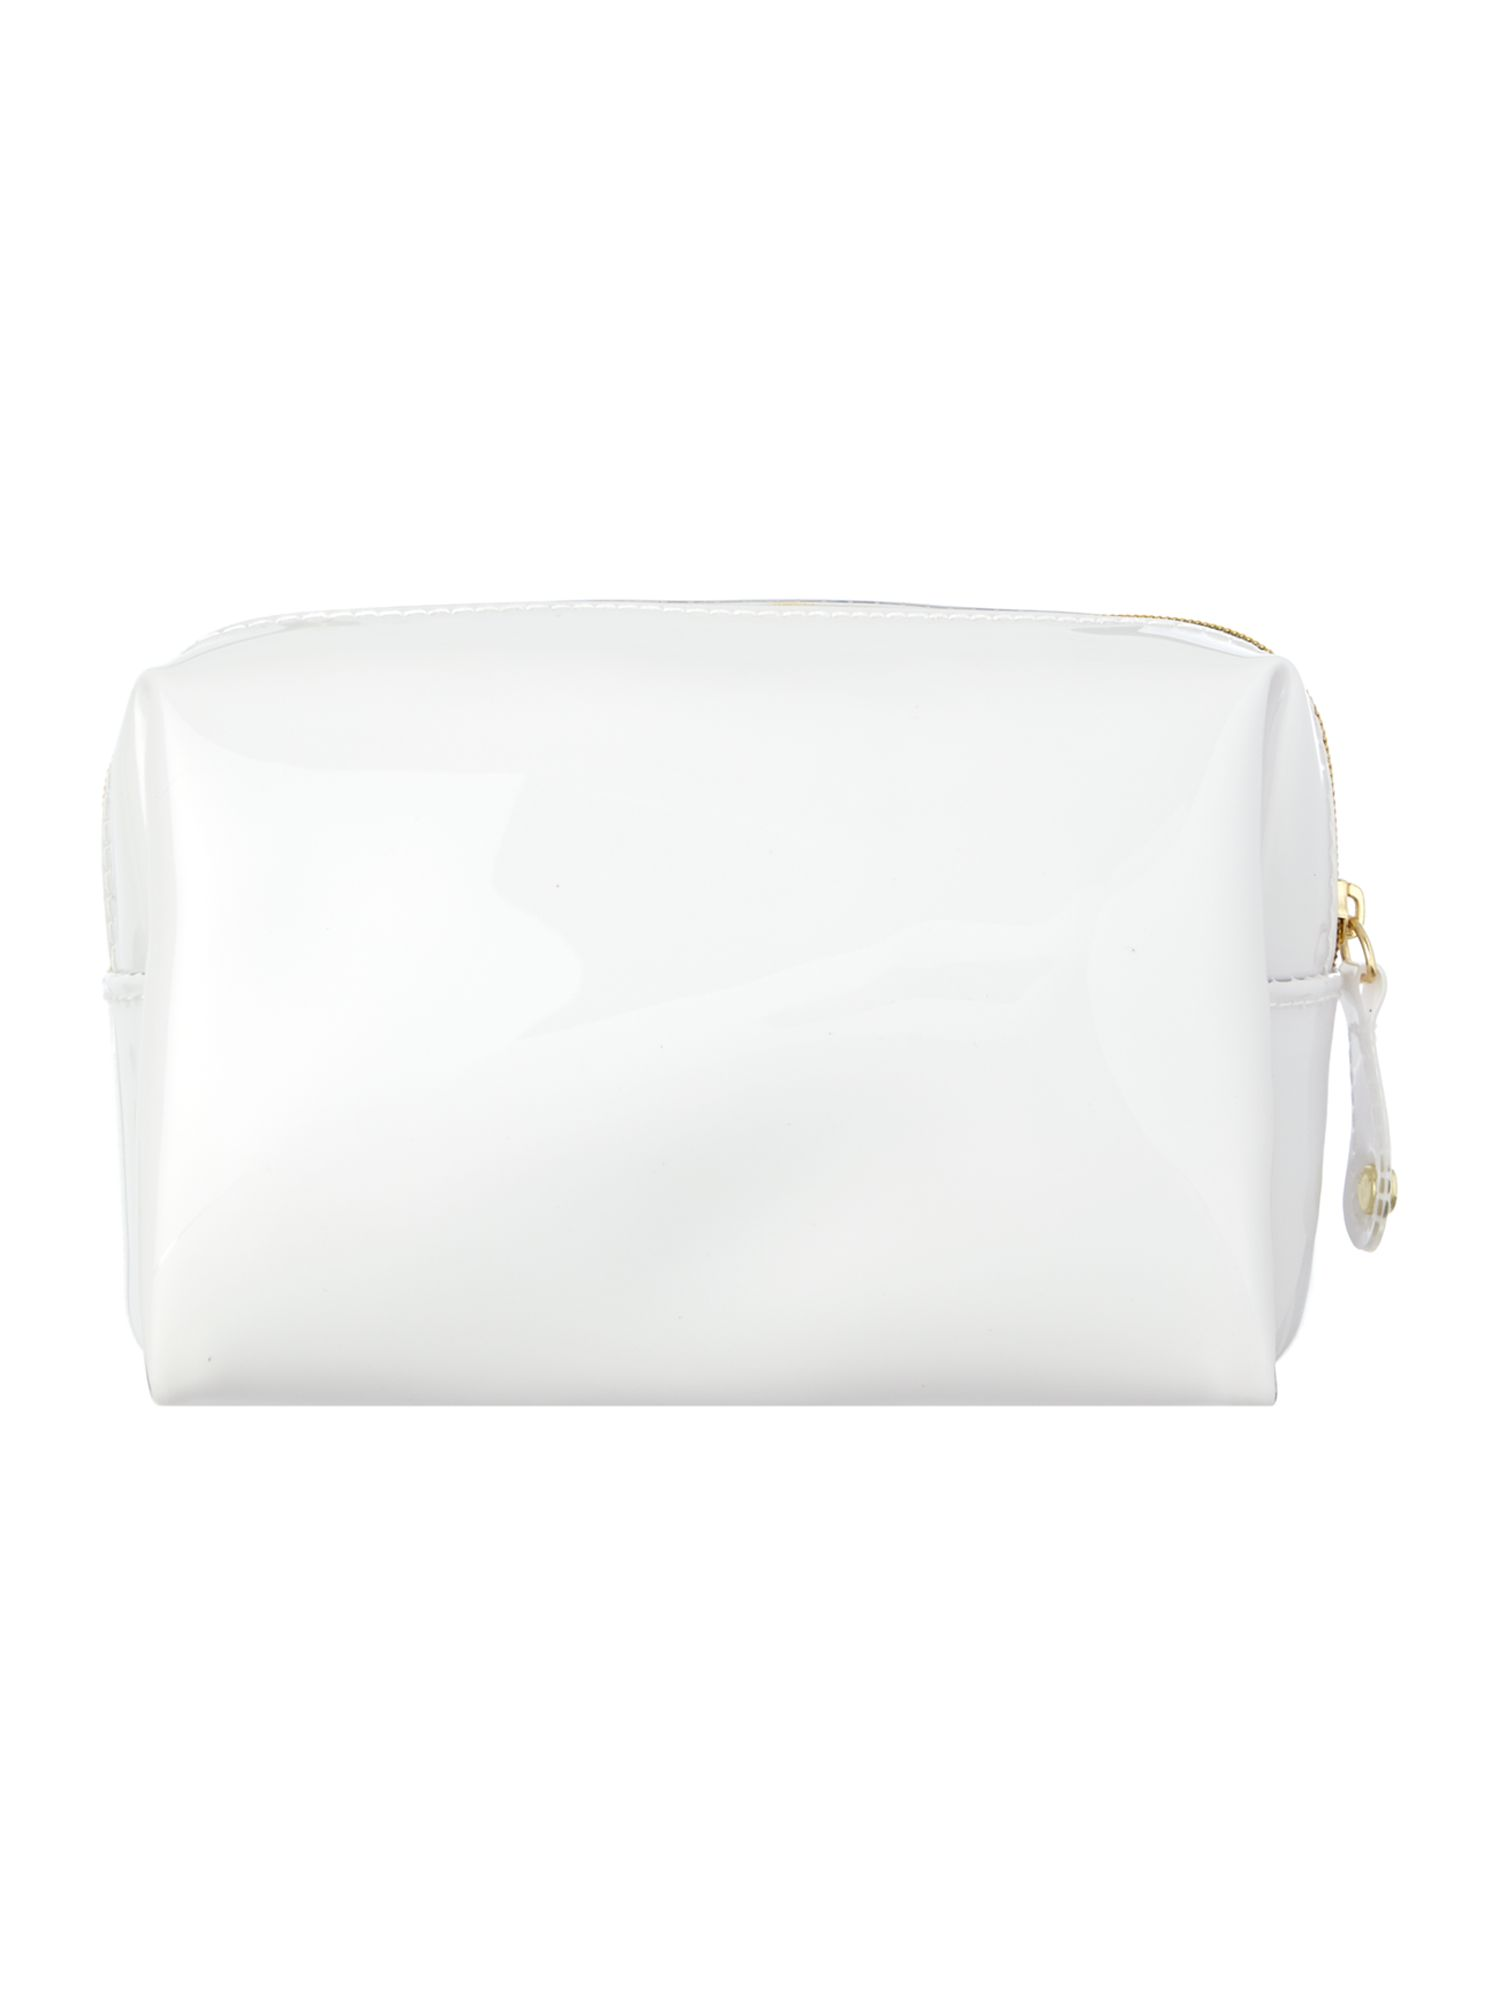 White small bow cosmetic bag